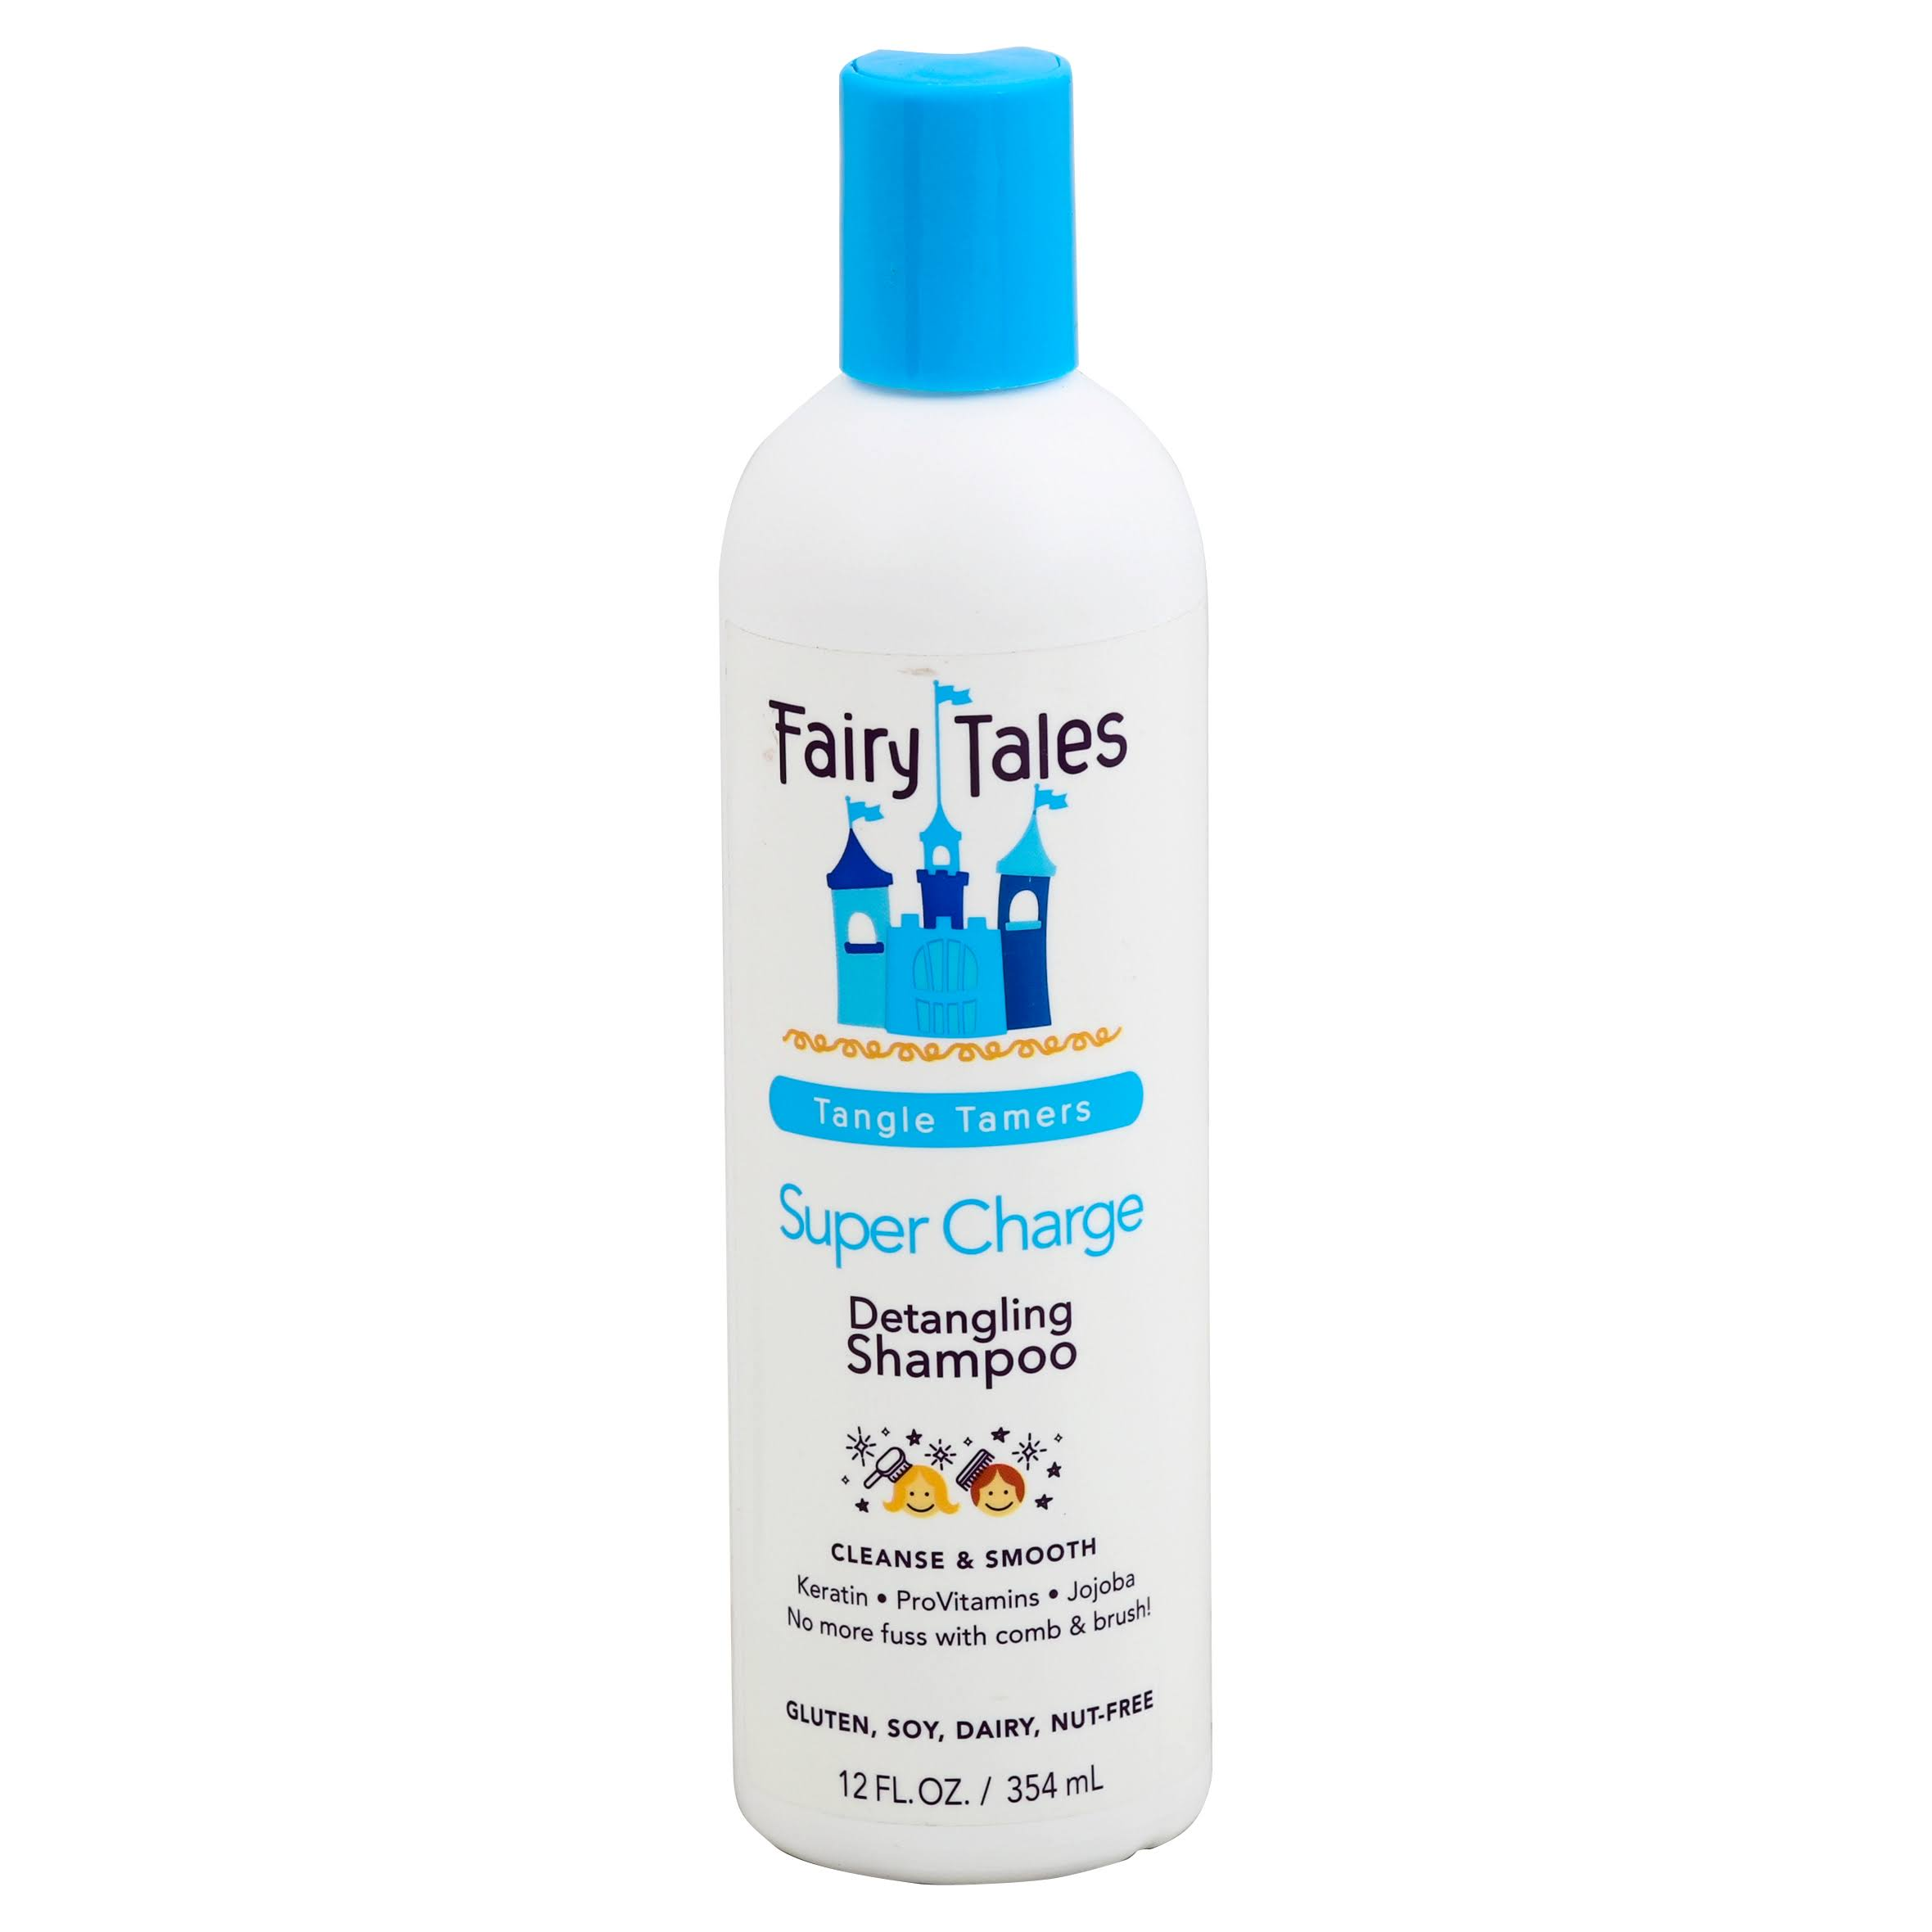 Fairy Tales Super-Charge Detangling Shampoo - 12oz